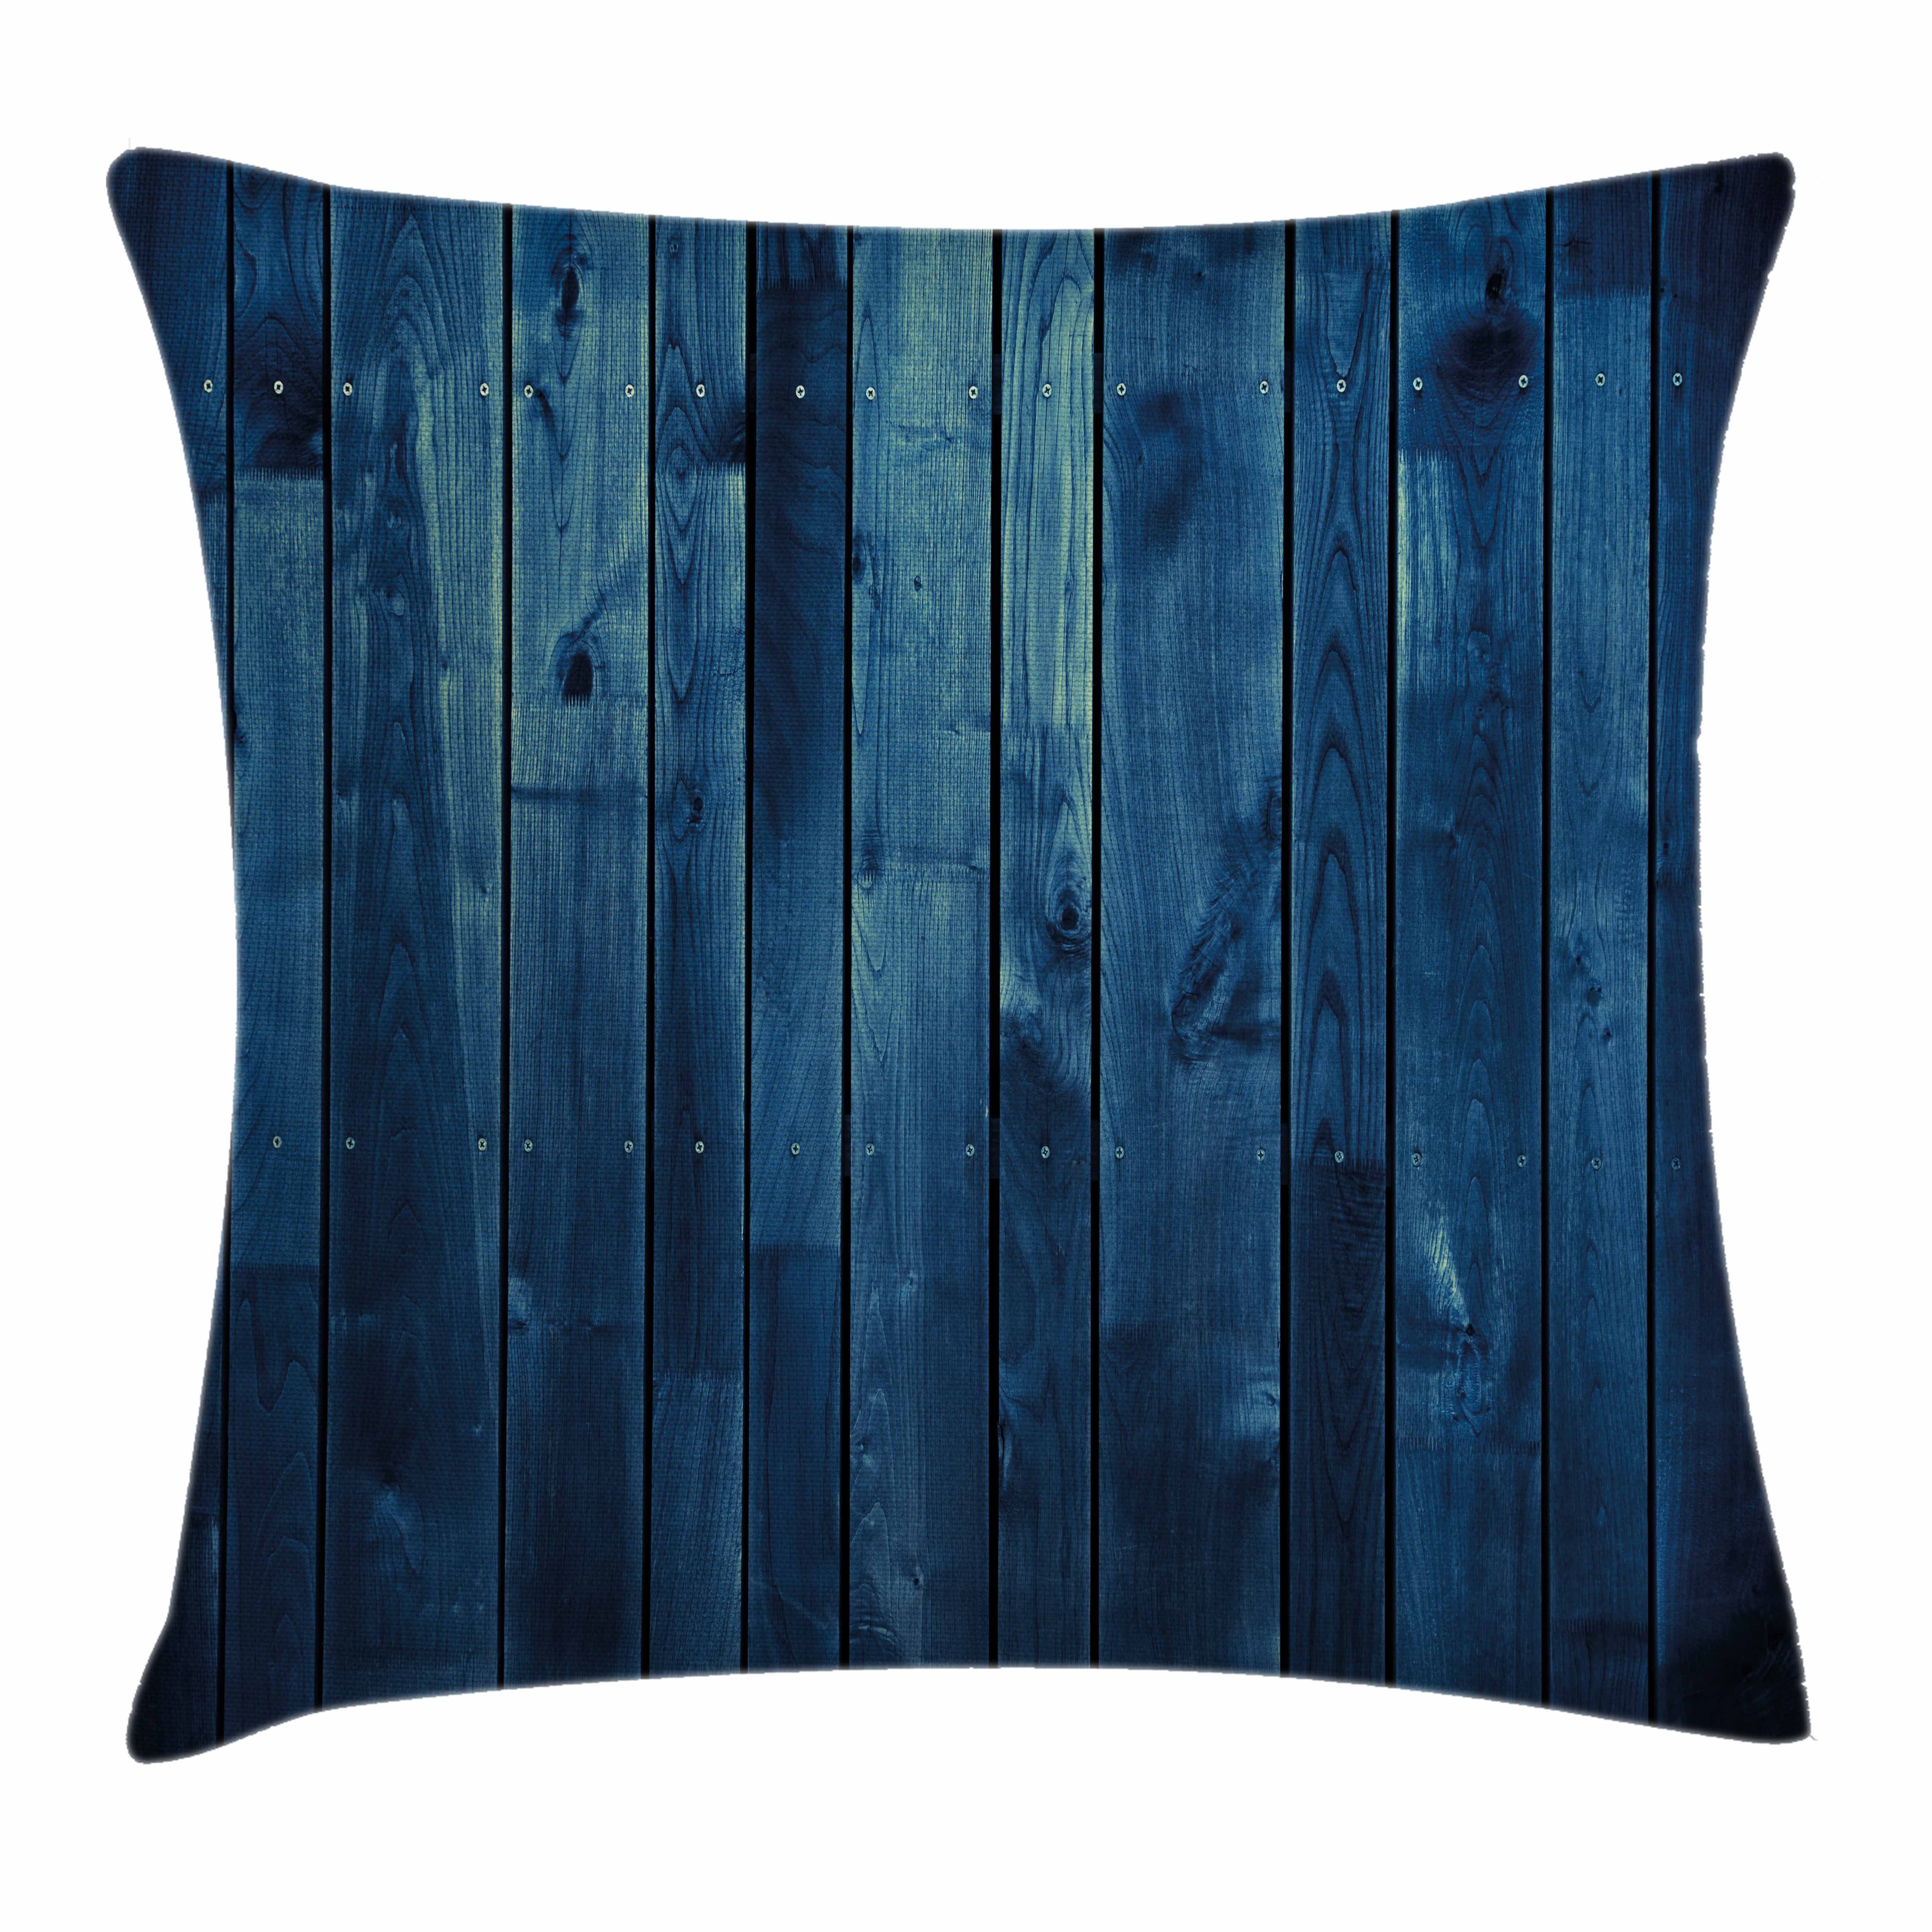 Dark Blue Throw Pillow Cushion Cover, Wooden Planks Texture Image Boards Floor Wall Lumber Rustic Home Decor, Decorative Square Accent Pillow Case, 18 X 18 Inches, Light Blue Dark Blue, by Ambesonne